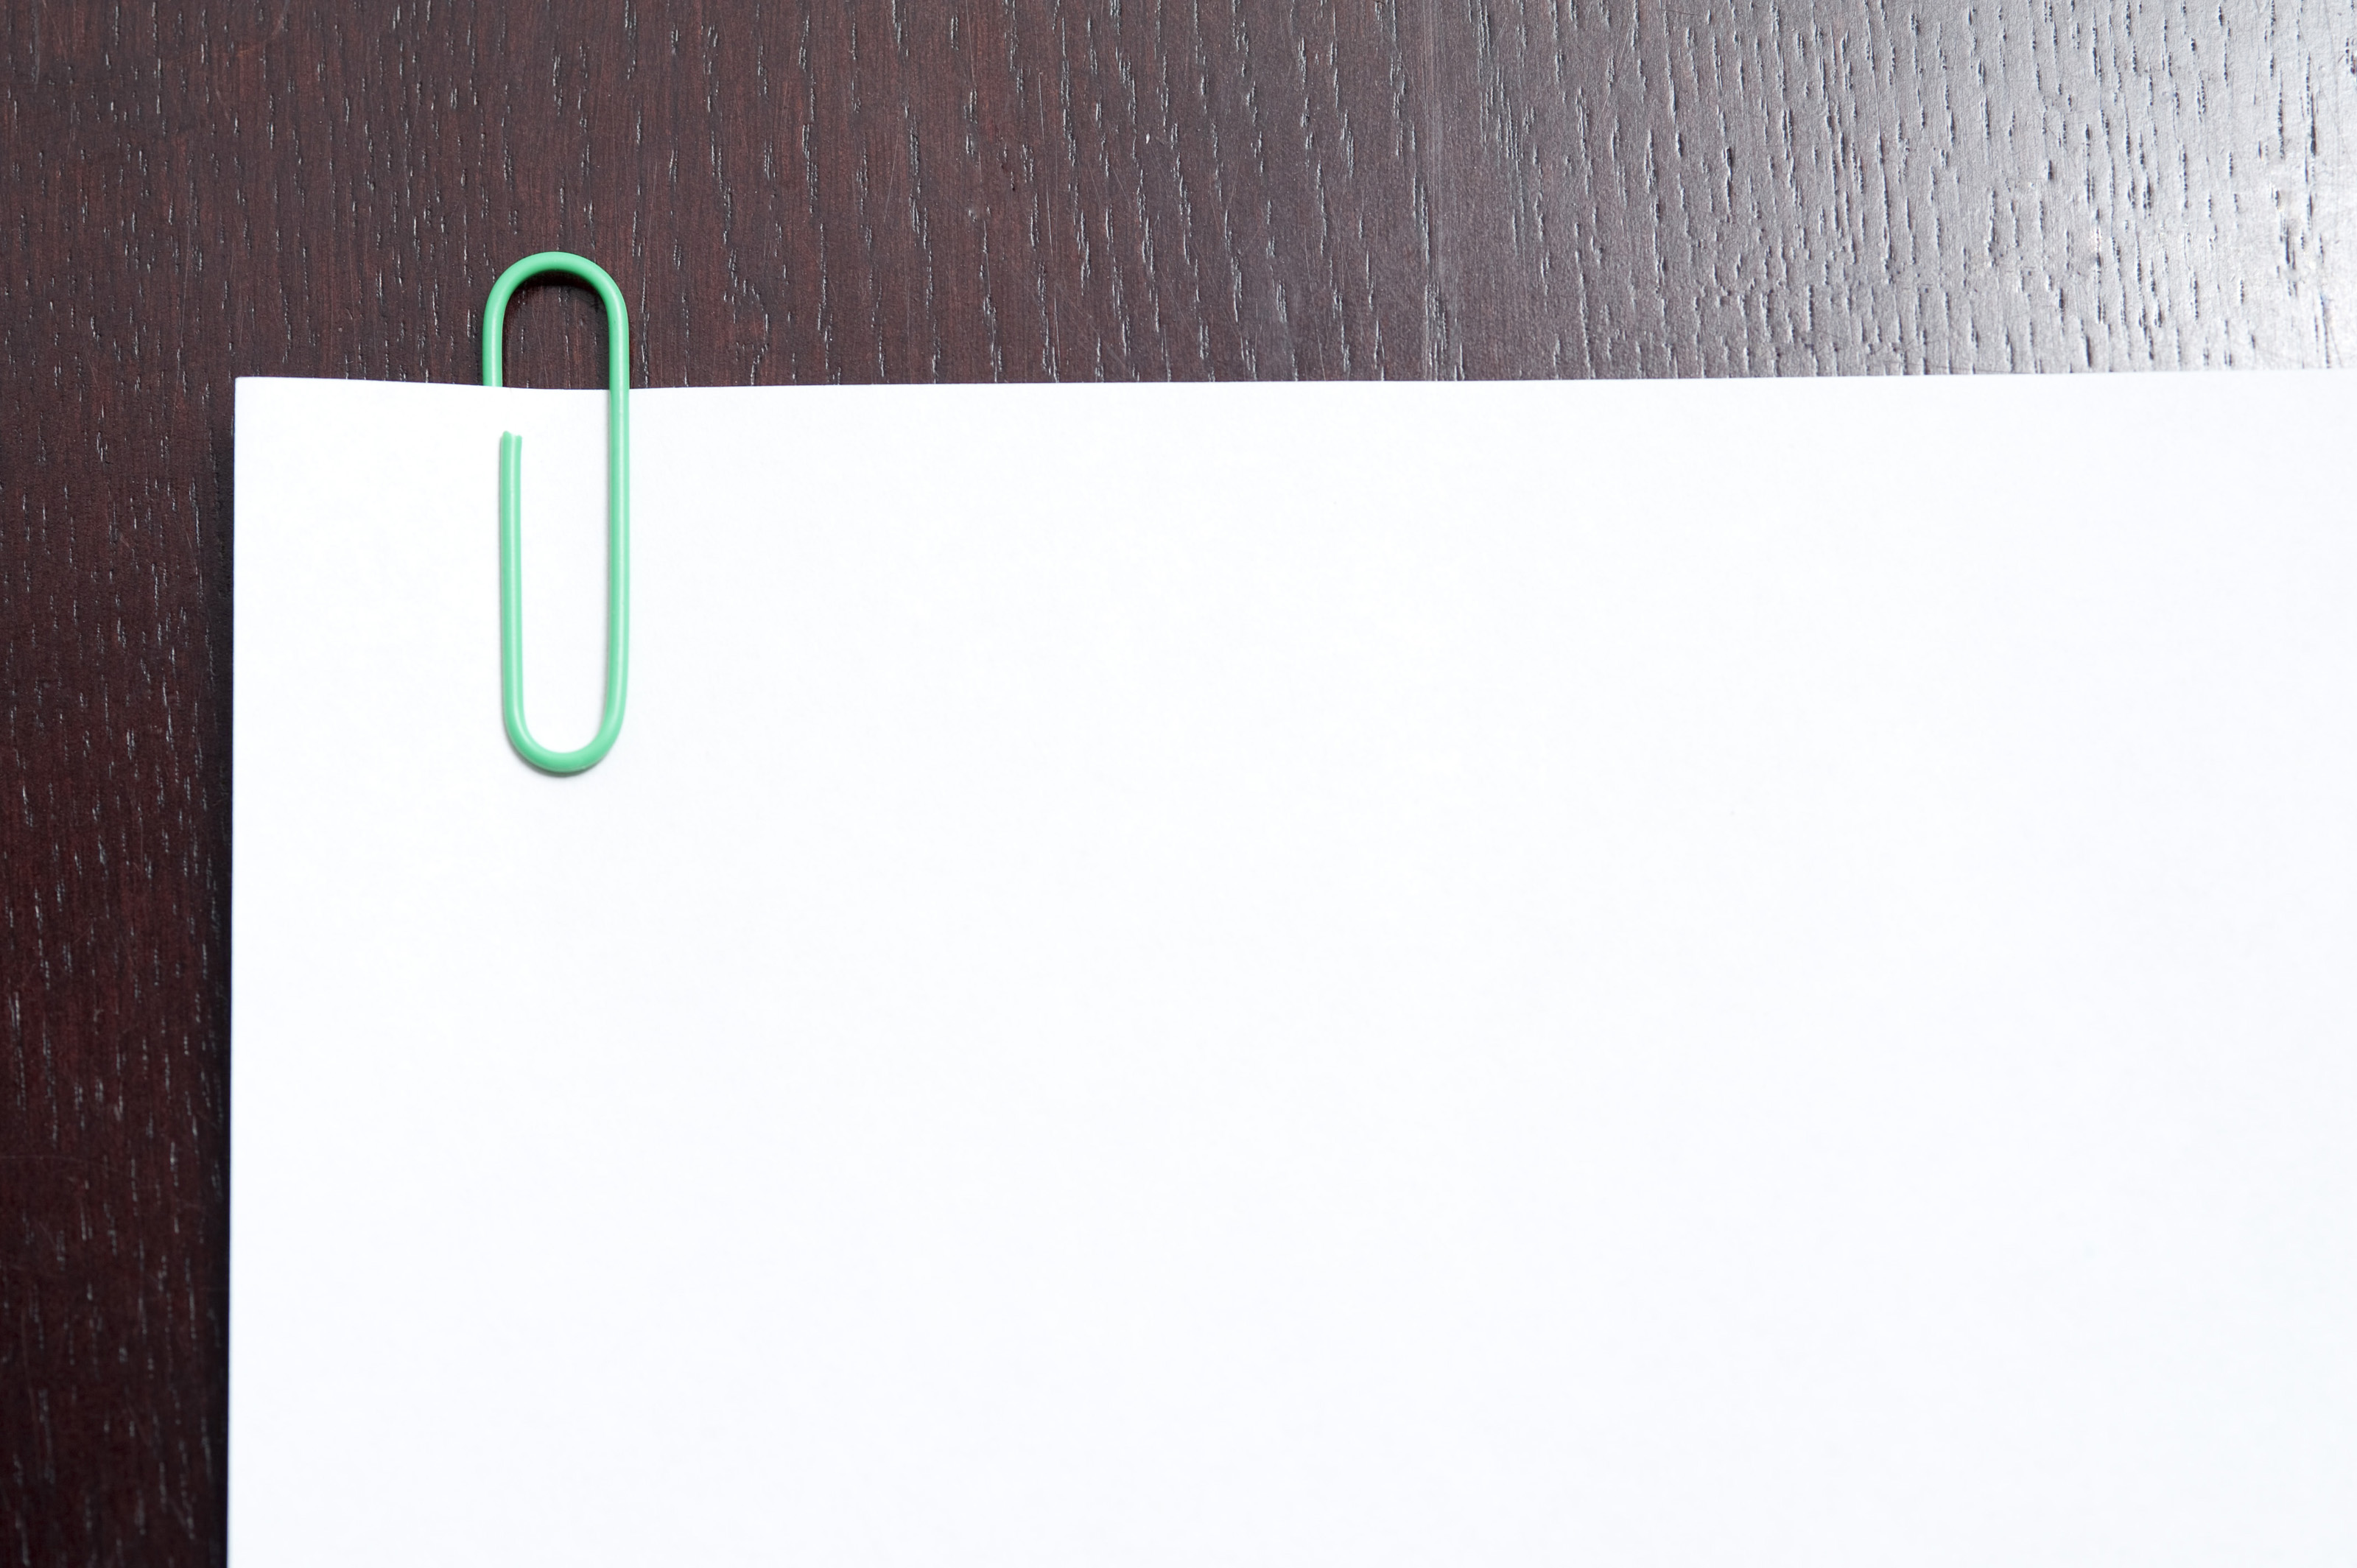 Blank Document With Several Pages Held Together With A Paper Clip Lying On  A Textured Wooden  Blank Document Free